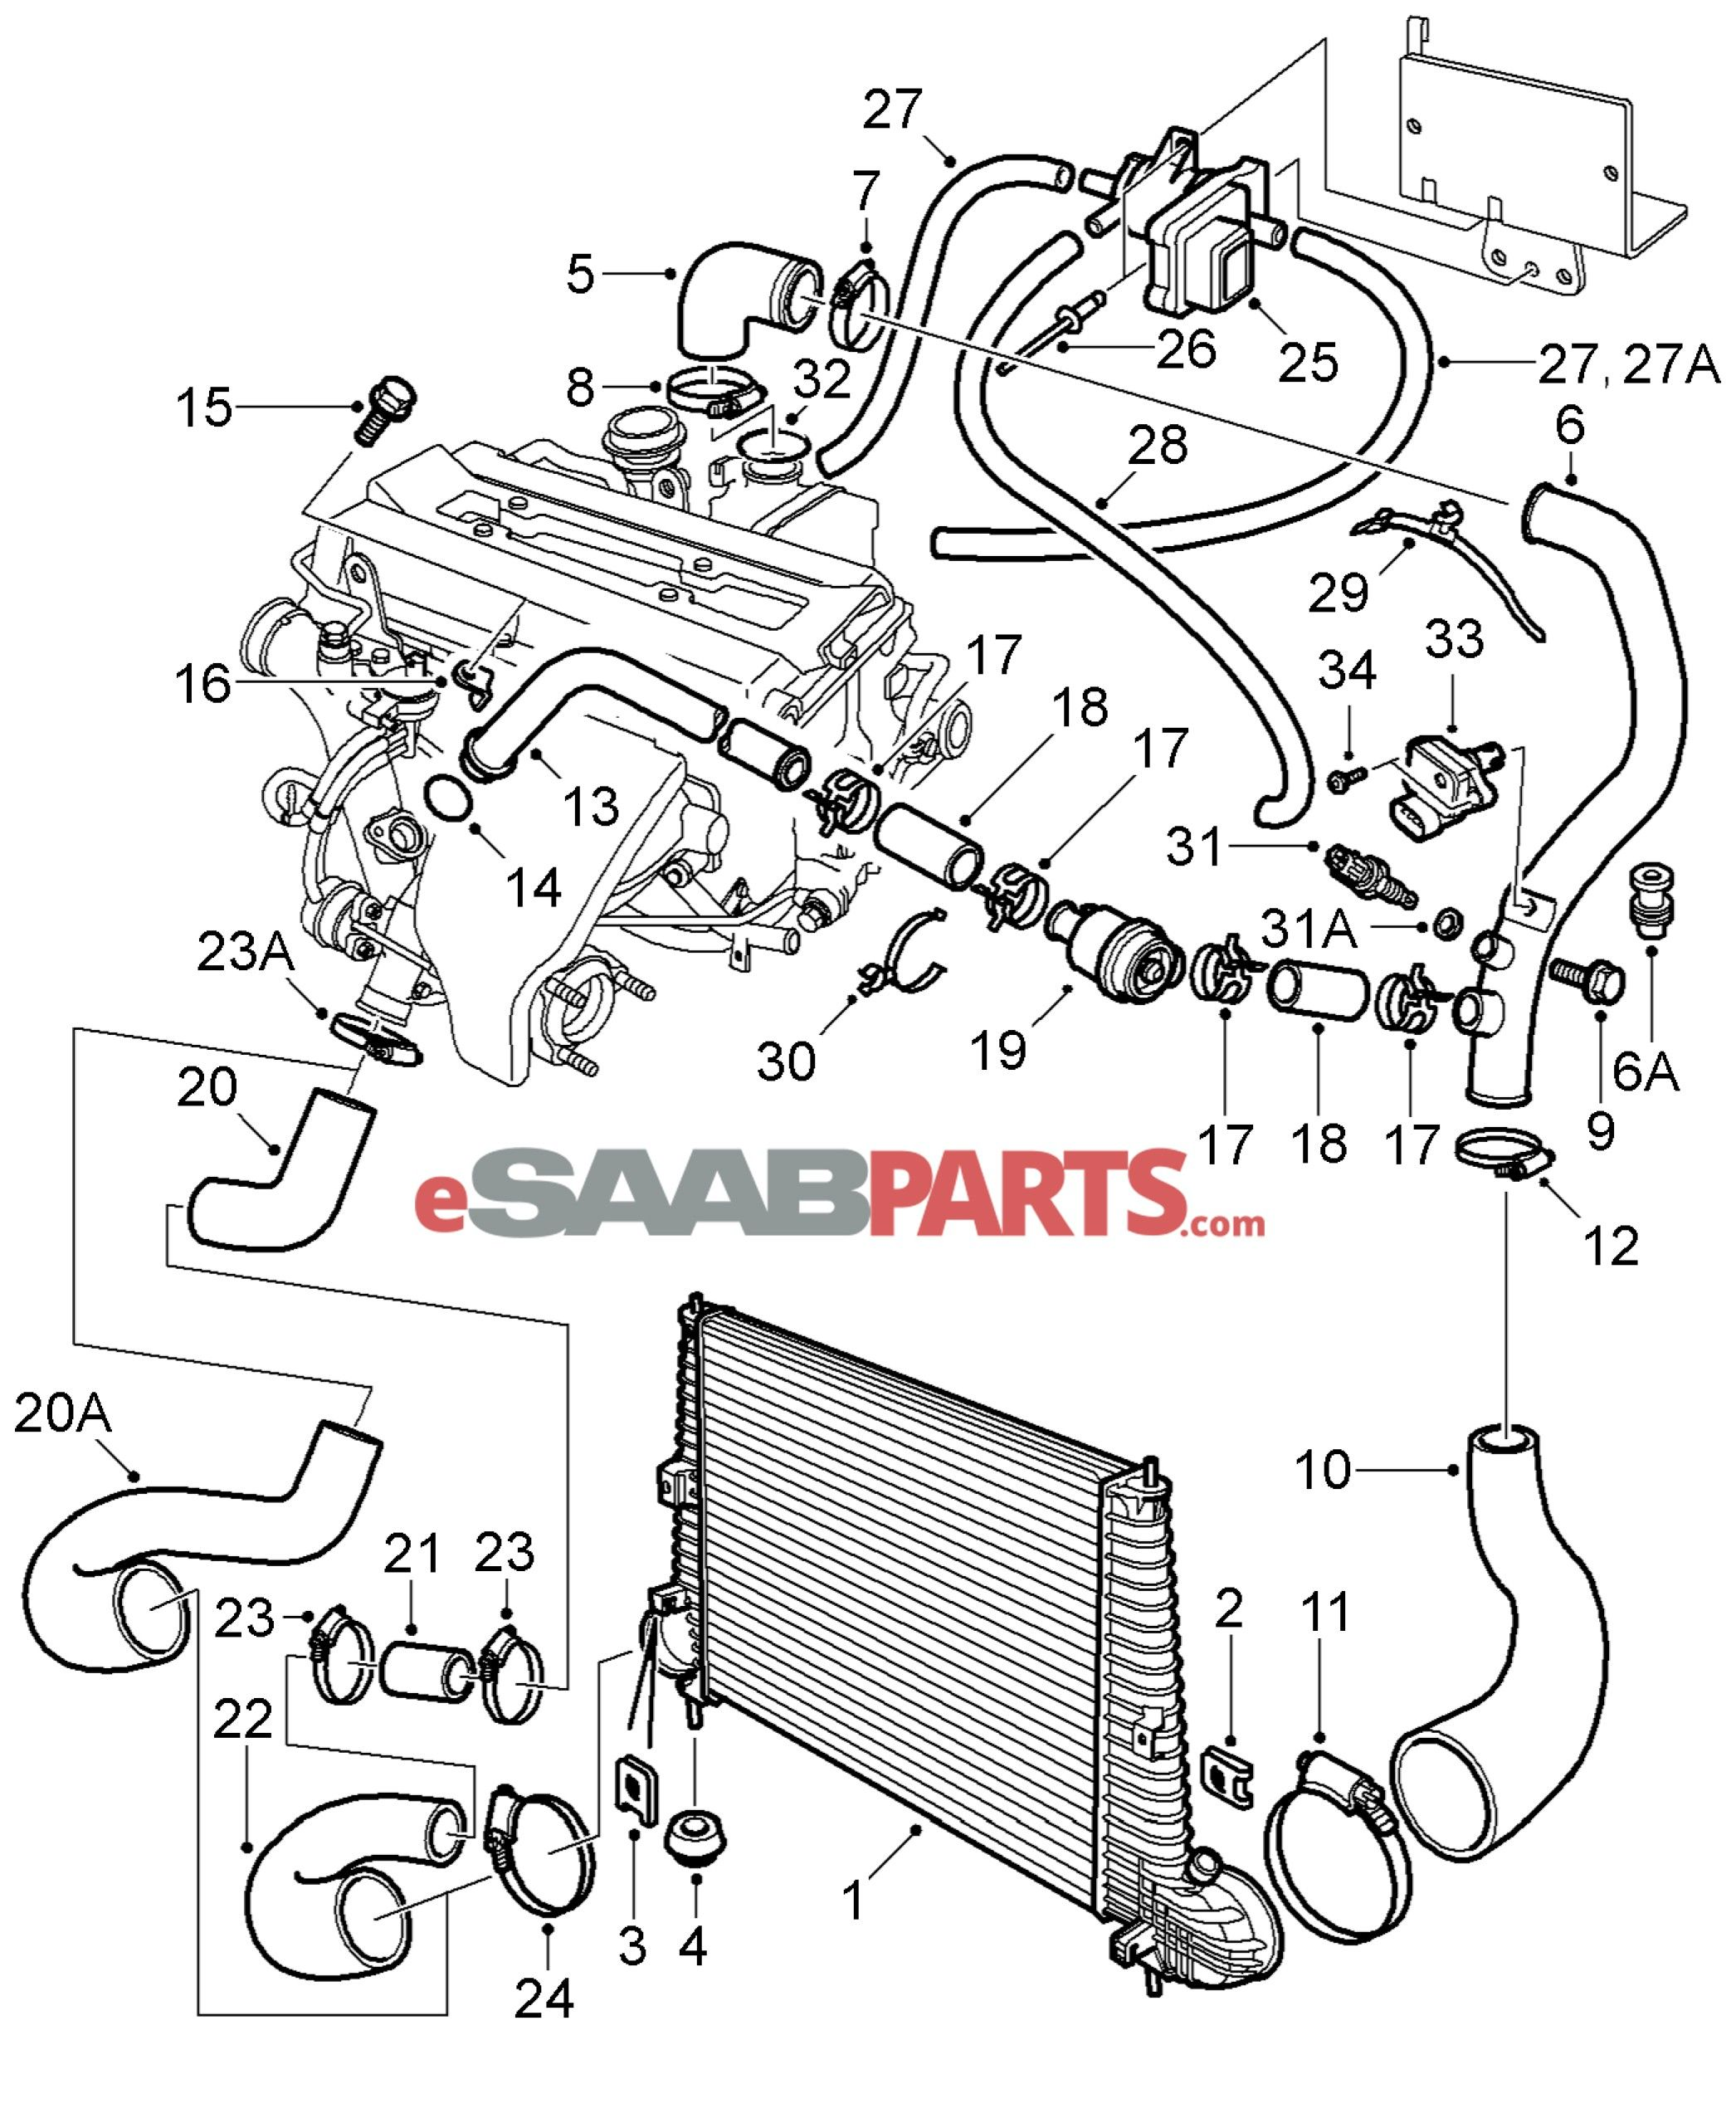 Saab 9 5 Engine Part Diagram Basic Guide Wiring